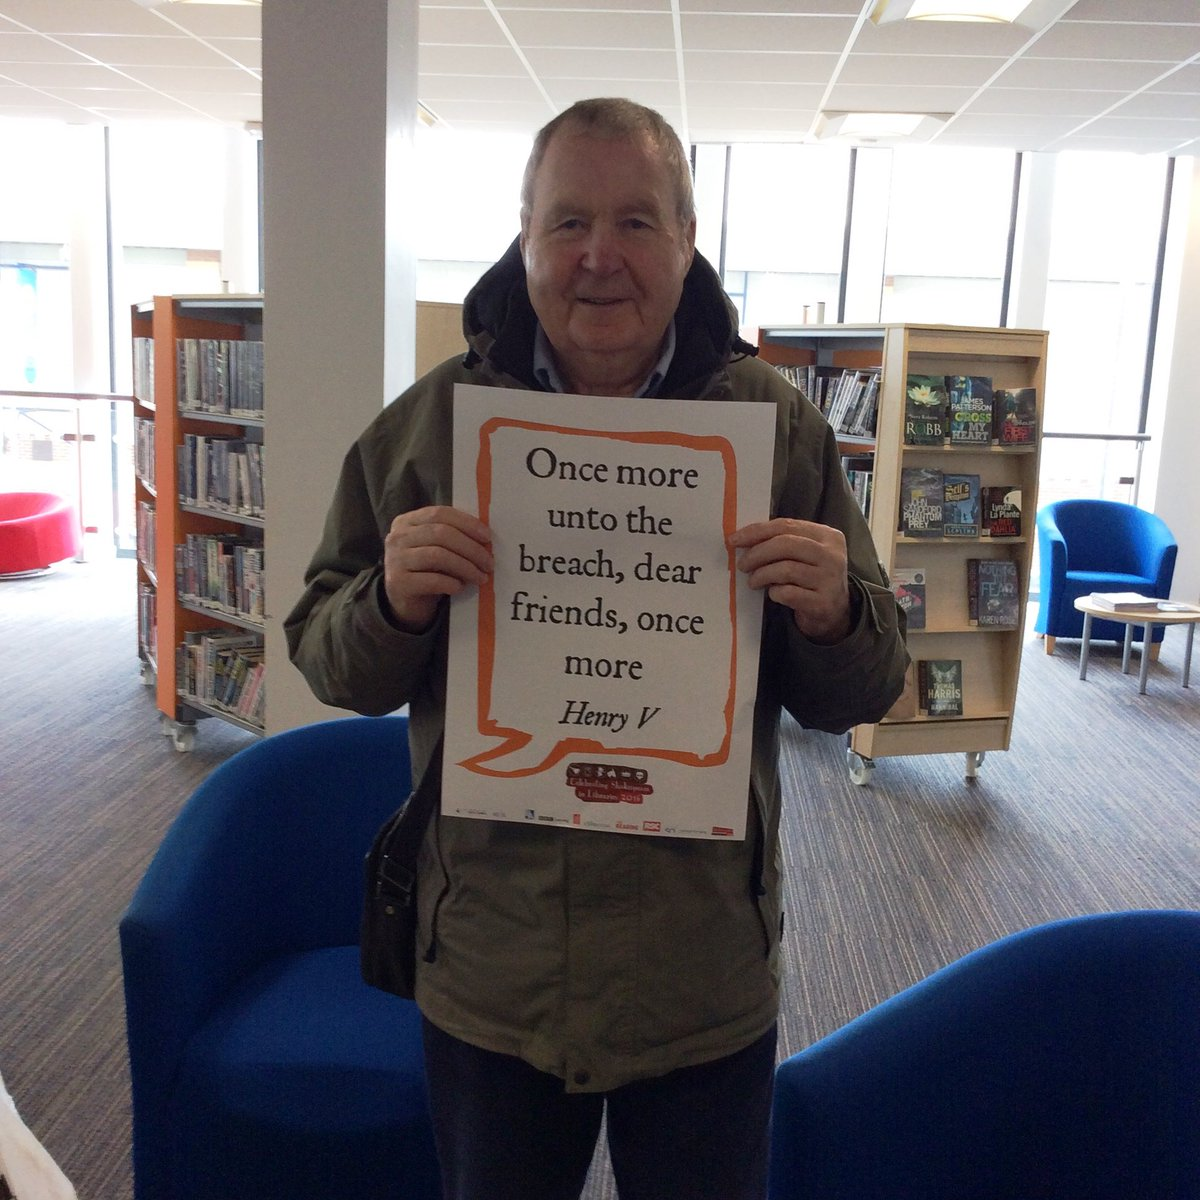 #Shakespeare16 Washington Town Centre Library salutes the Bard https://t.co/QBp1IRPAcb